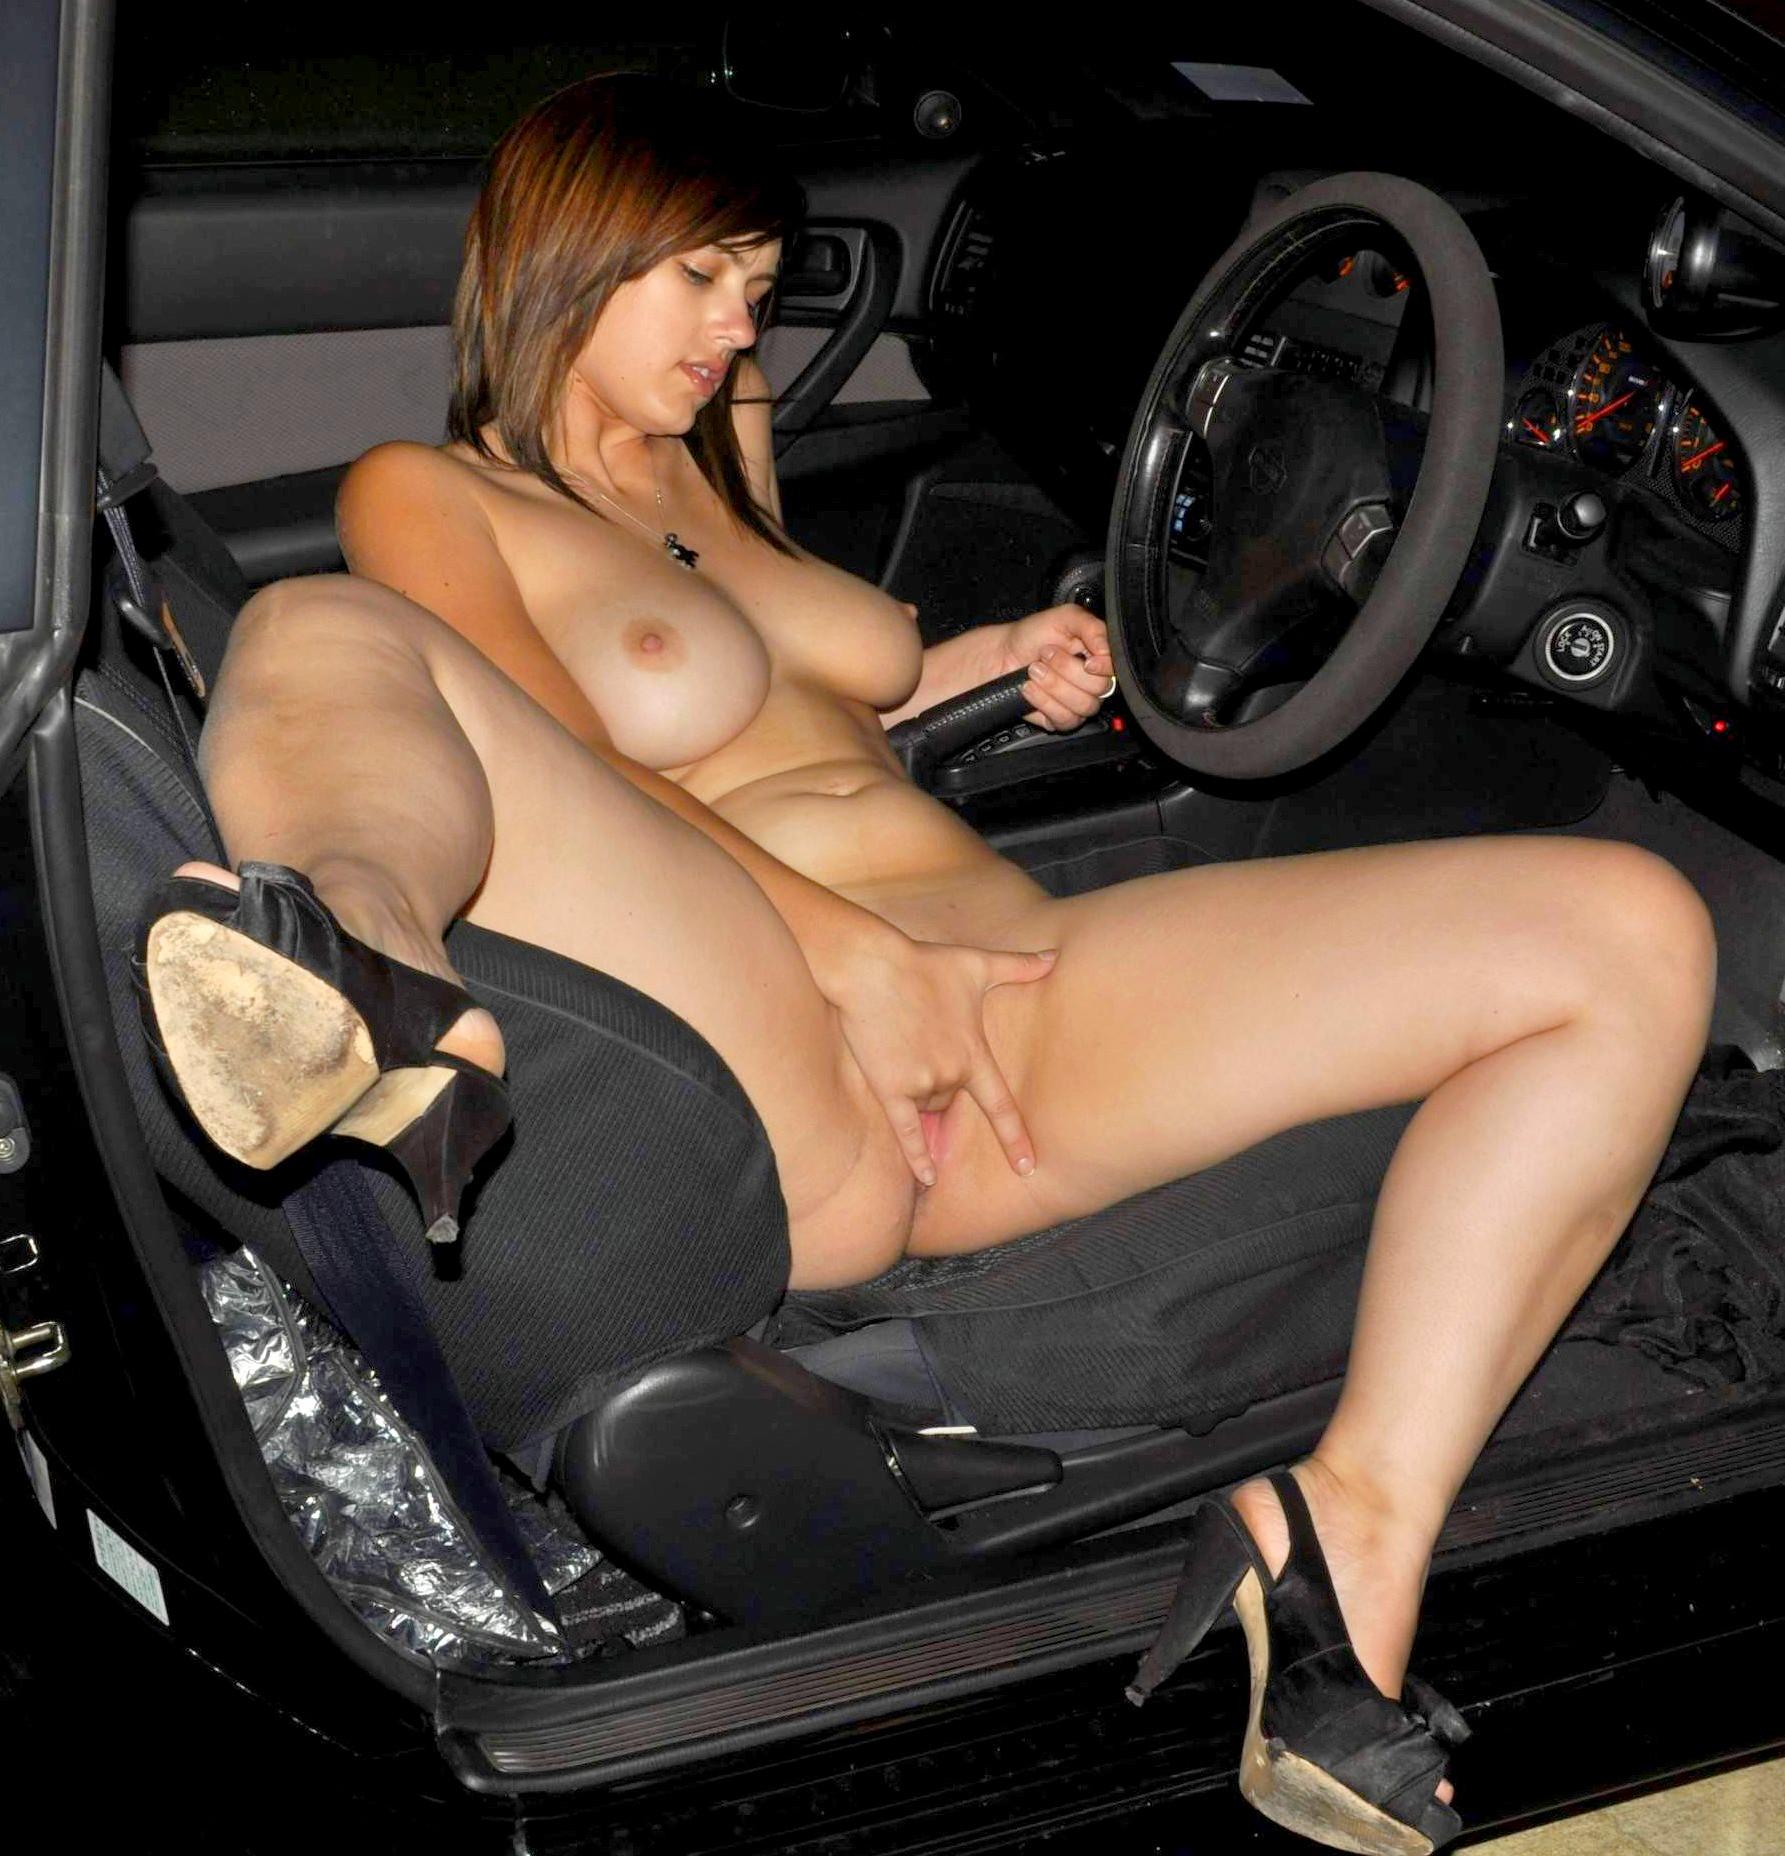 Angelique Nude In Pussy Petrol